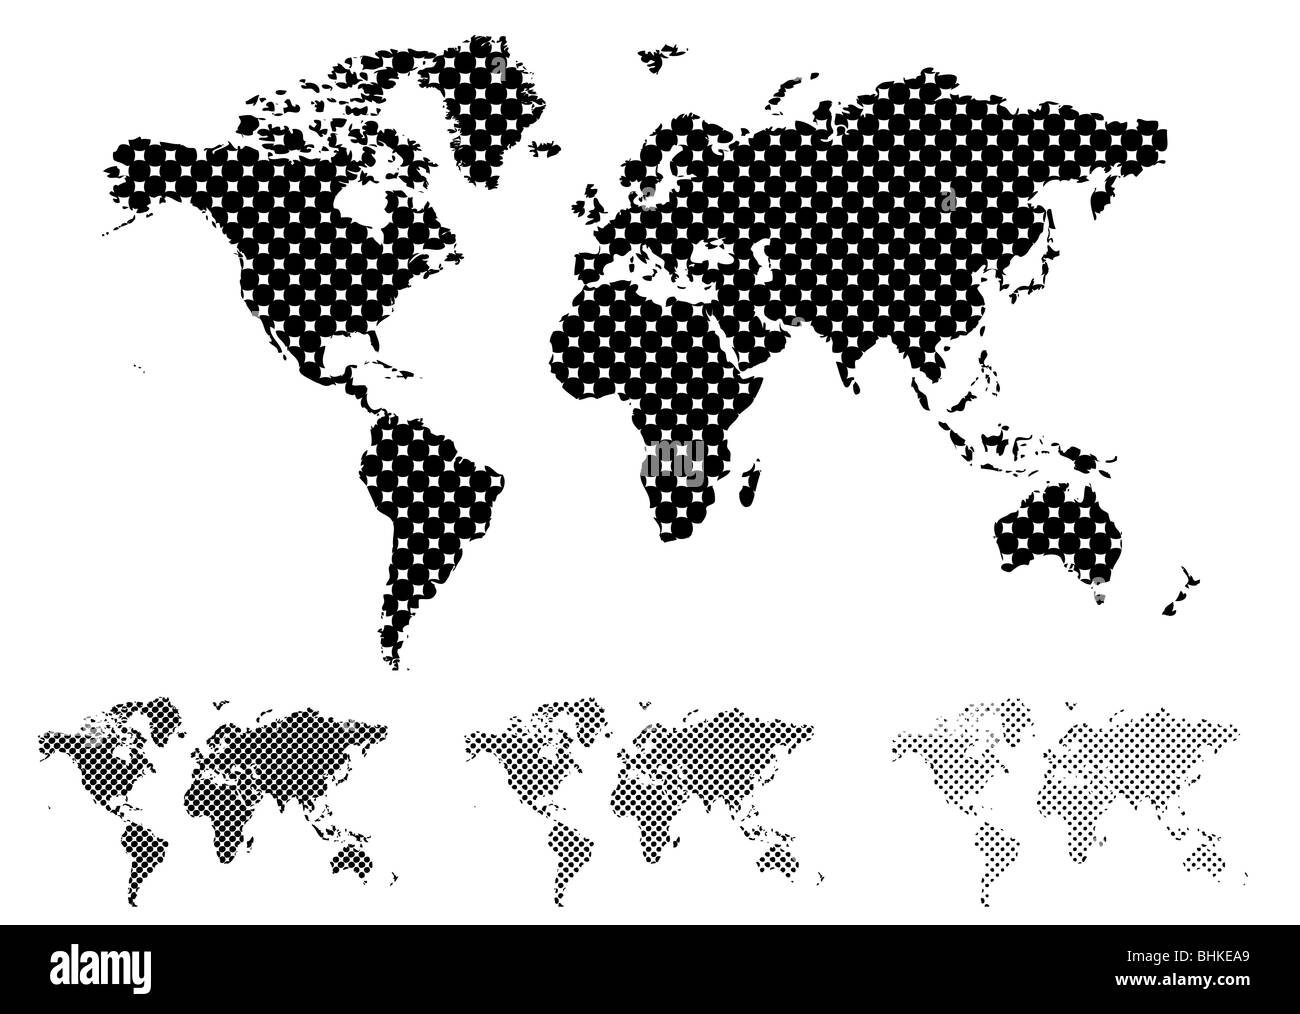 Black and white halftone map of the world with different tint values Stock Photo